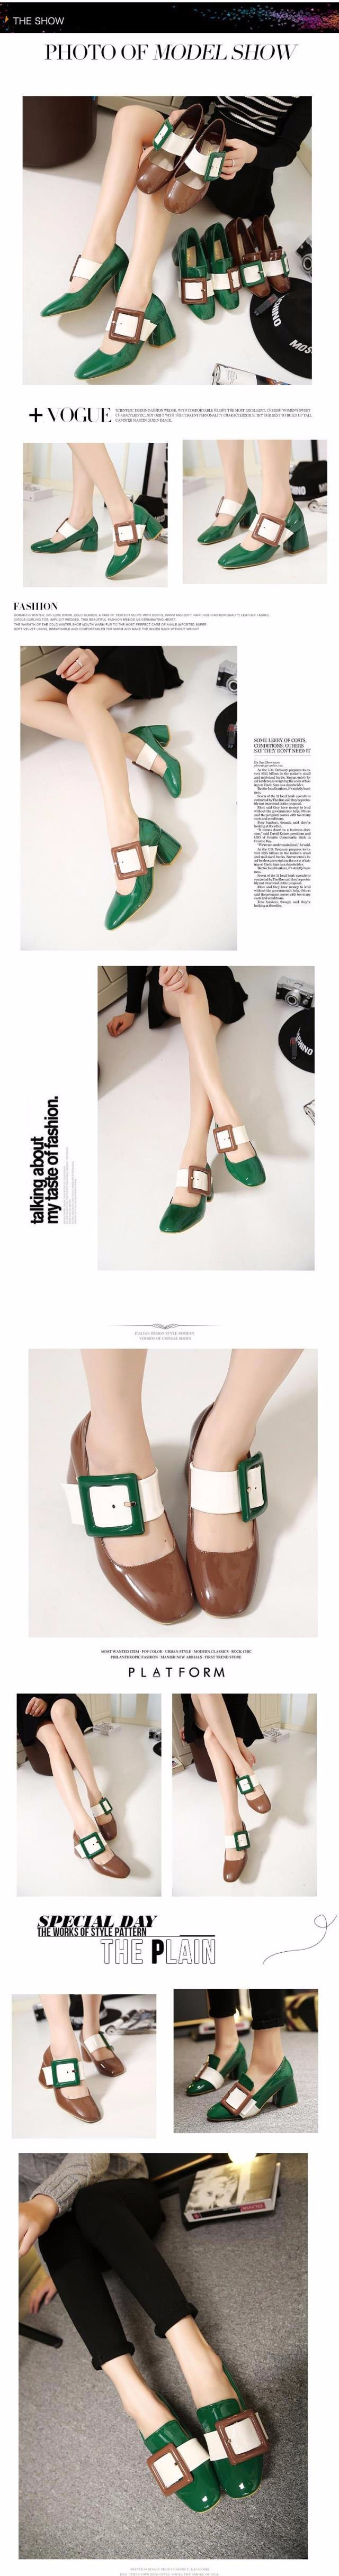 2016 New Spring Summer Retro Med Square Heel Women Shoes Pumps Patent Leather Large Square Buckle Platform Single Shoes ZM3.5